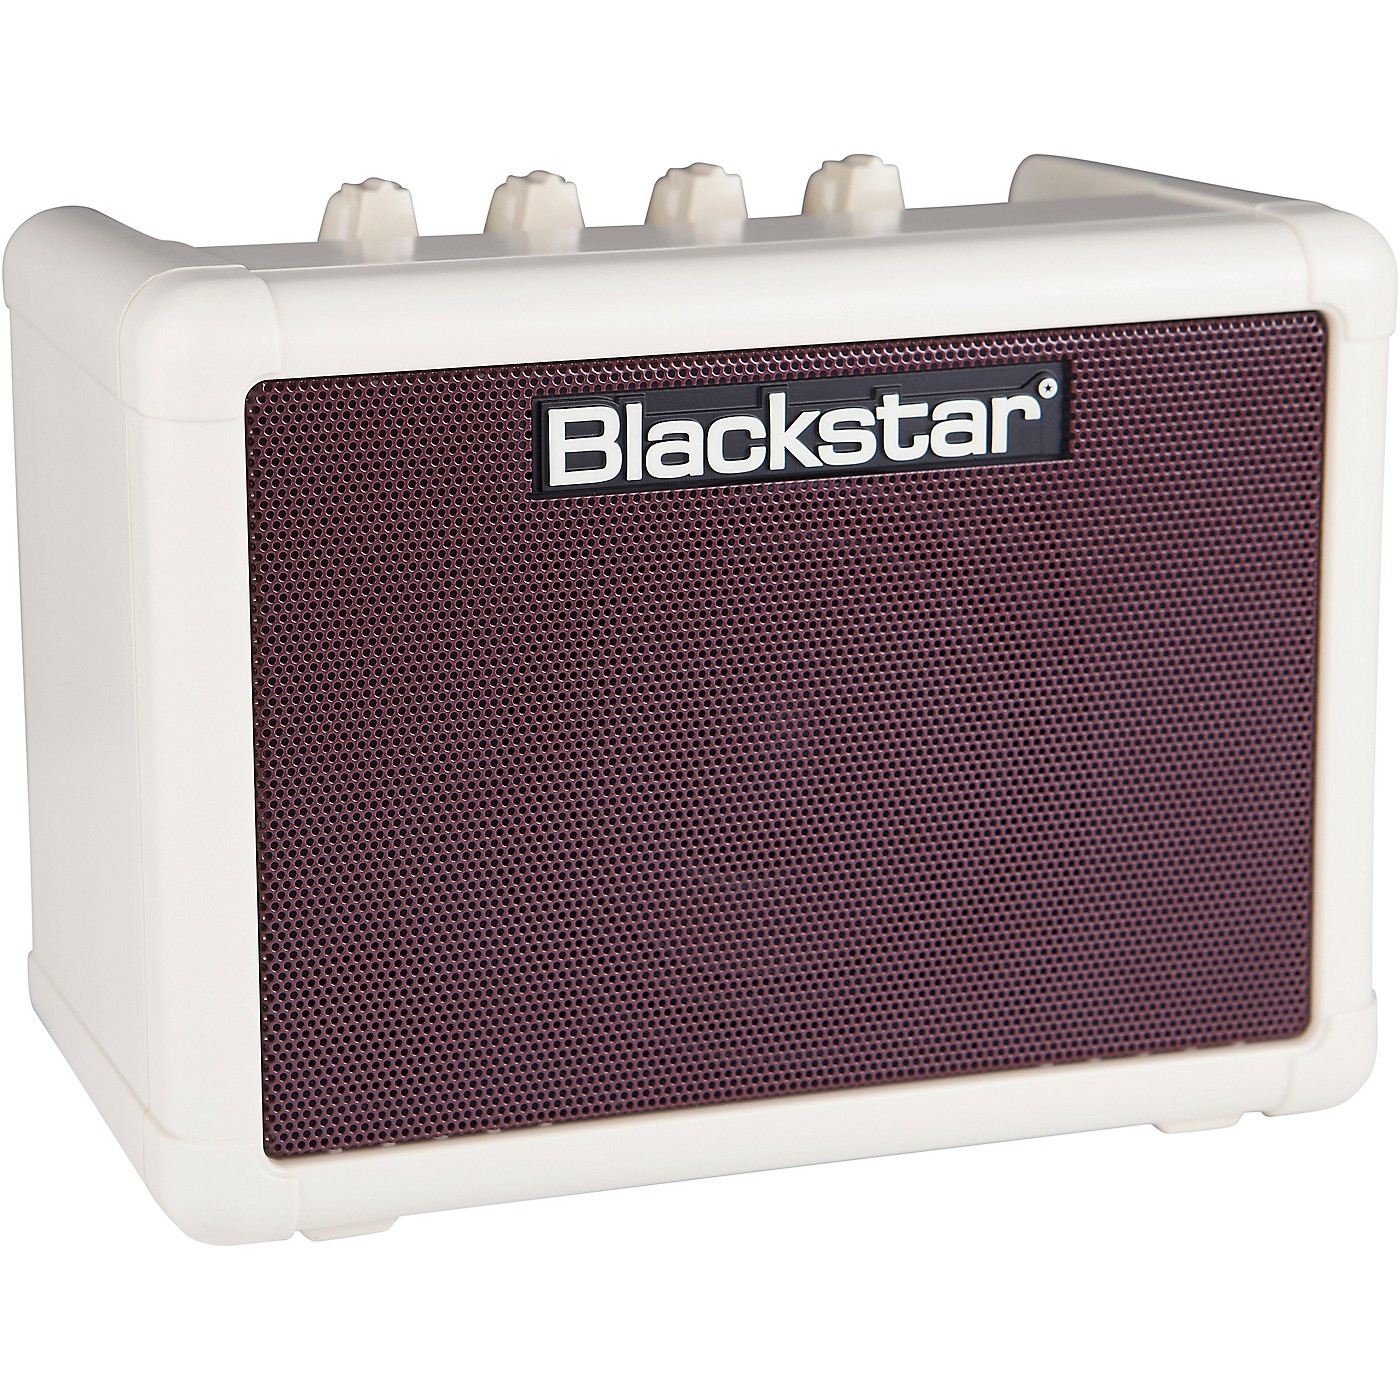 Blackstar Fly 3 3W 1x3 Guitar Combo Amp Vintage Cream Oxblood with Fly 103 3W Cab and Power Supply thumbnail